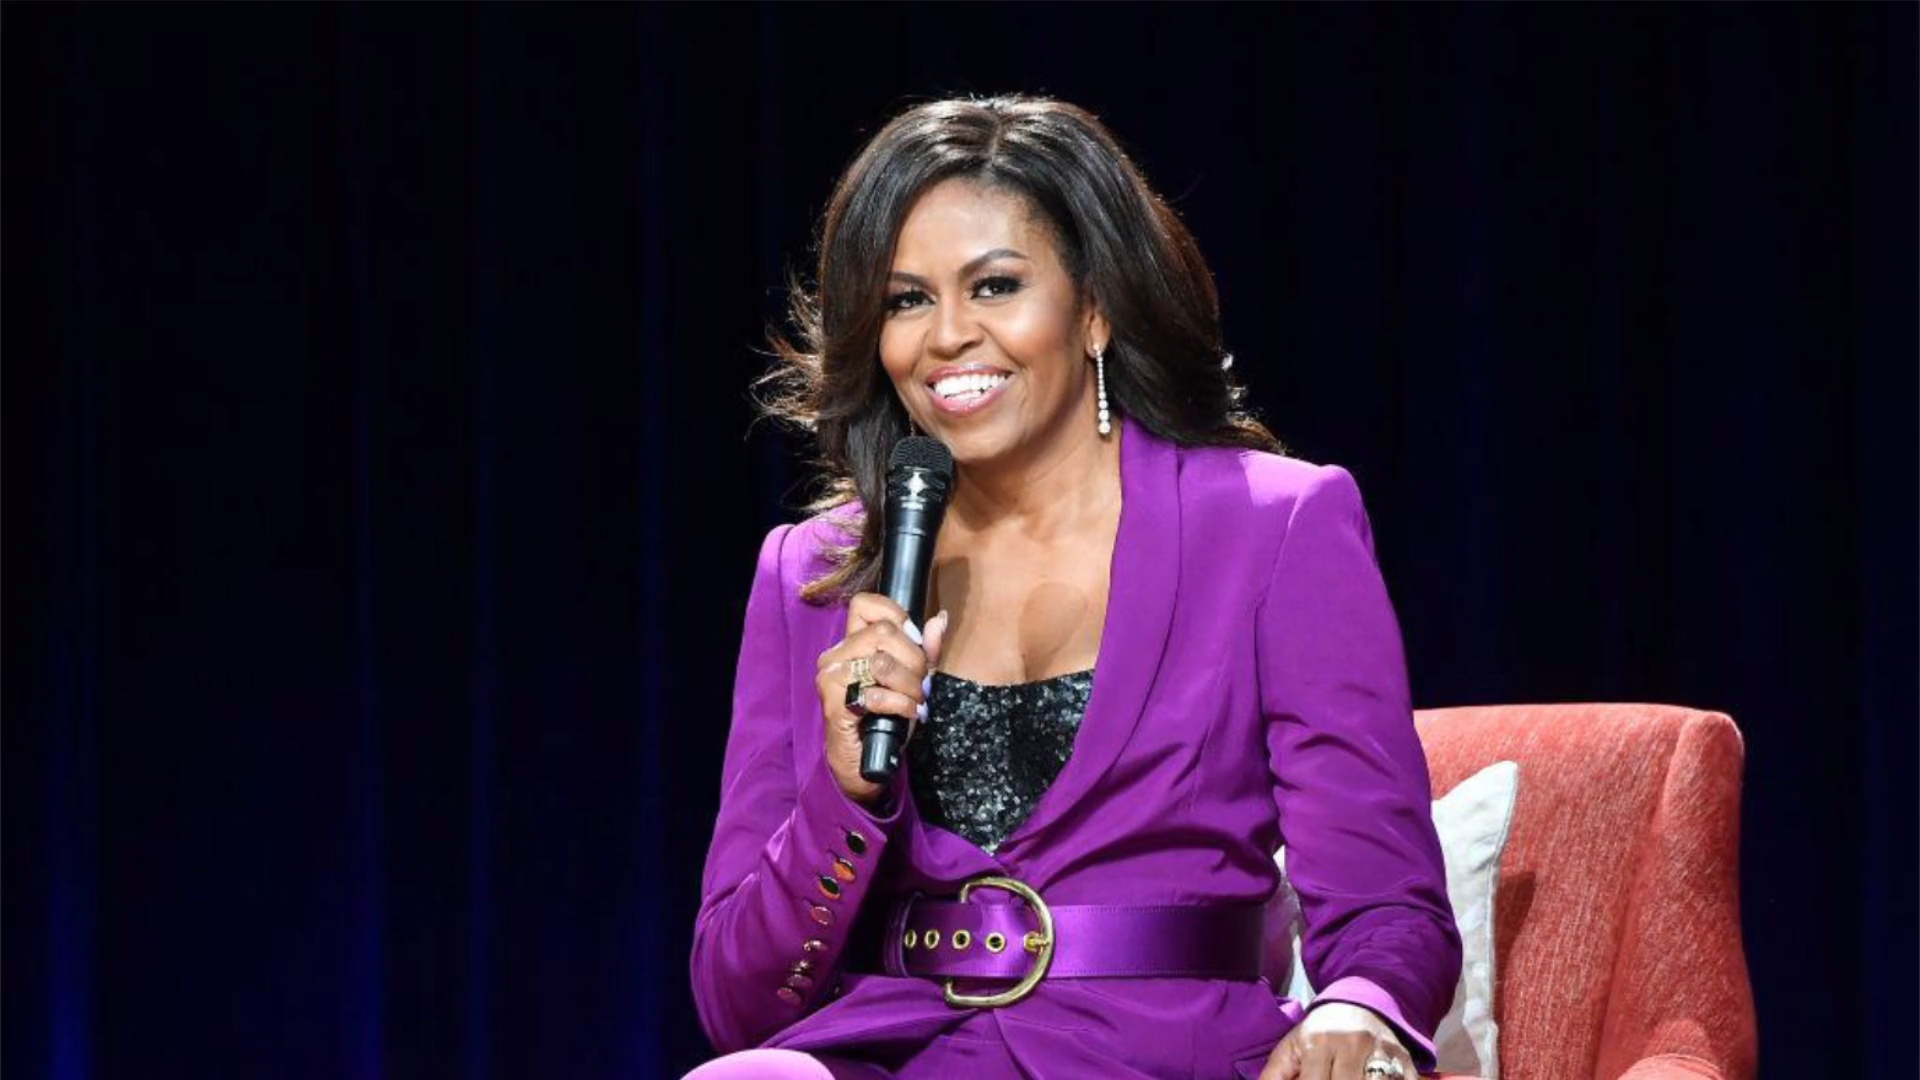 Michelle Obama Wins Grammy Award For Audio Recording Of 'Becoming' Memoir